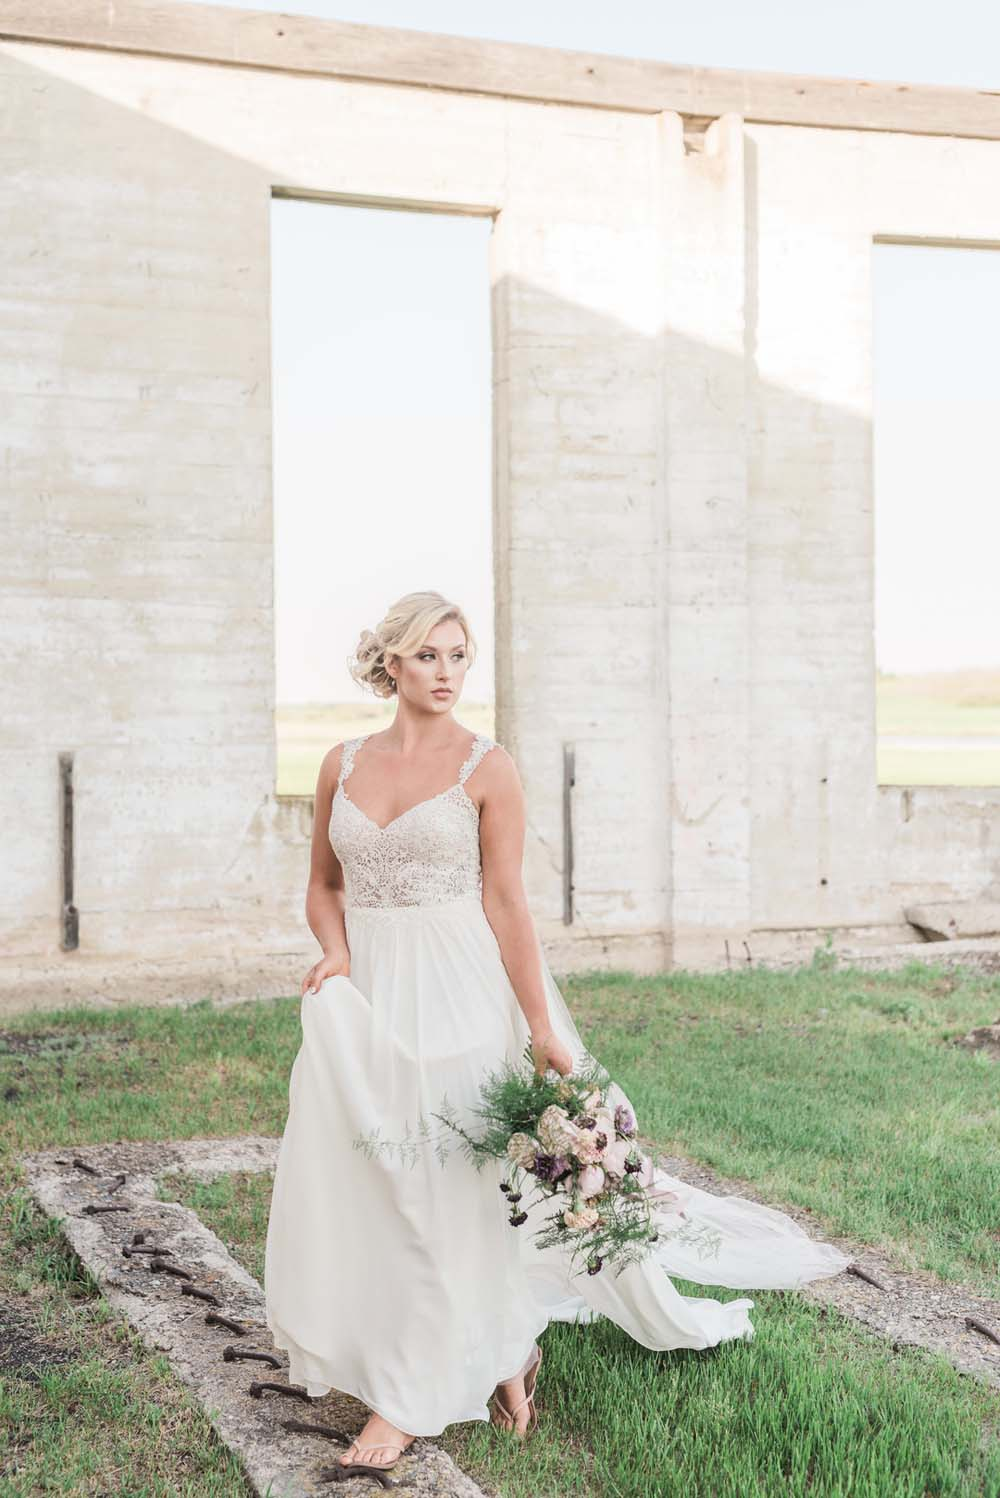 A Romantic Themed Shoot Inspired by Ruins - Bride